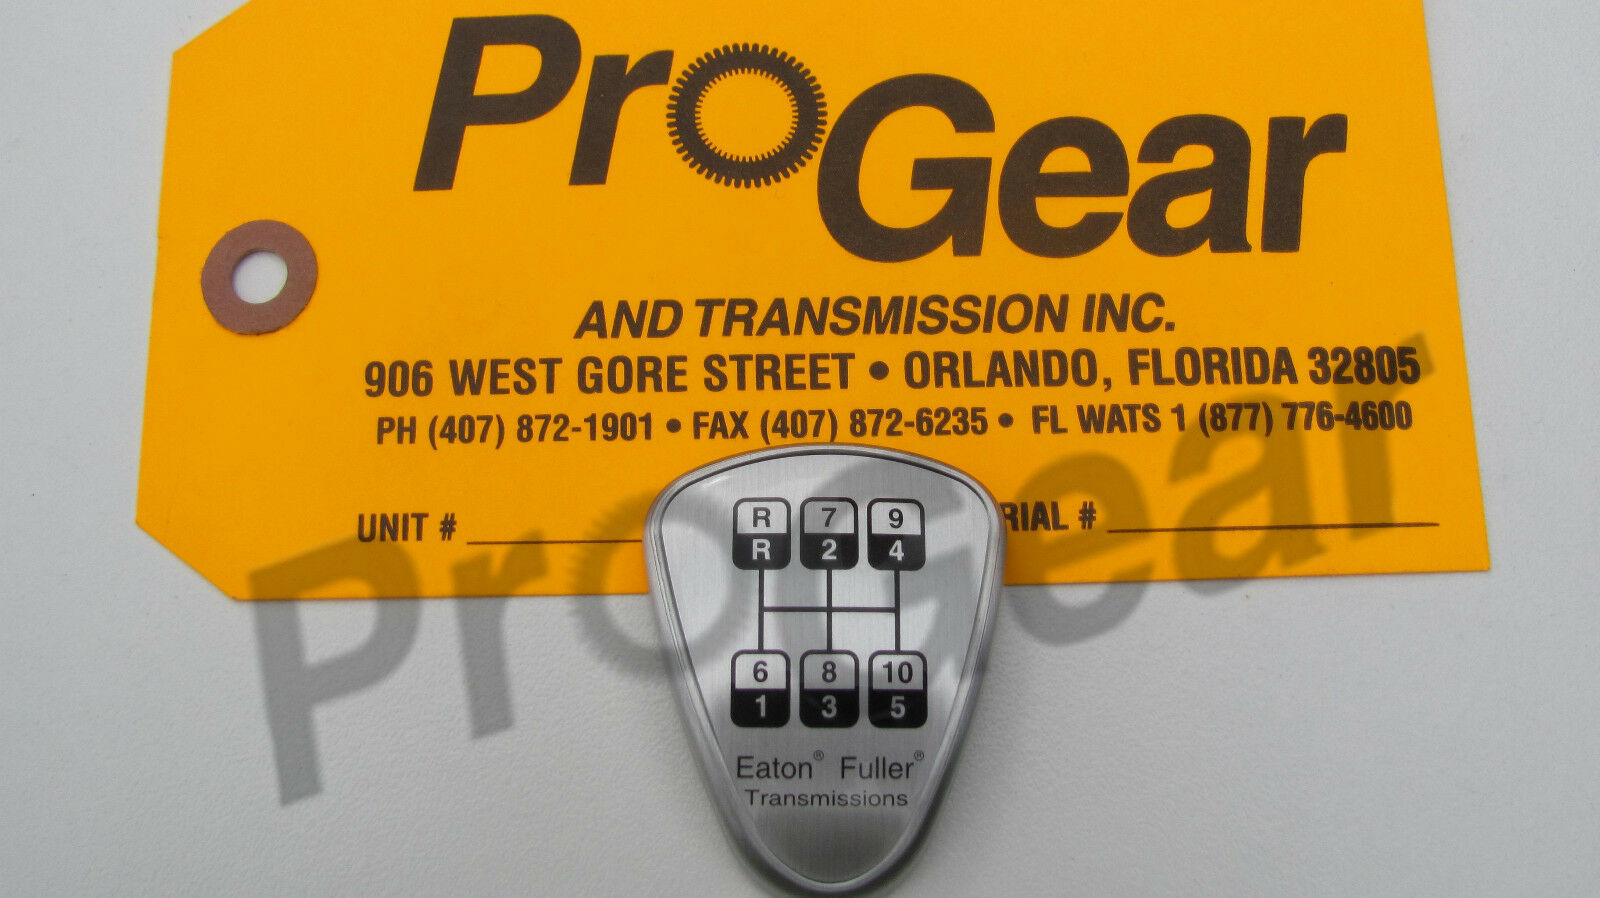 eaton fuller 9 speed transmission diagram pop up camper wiring 10 shift knob medallion